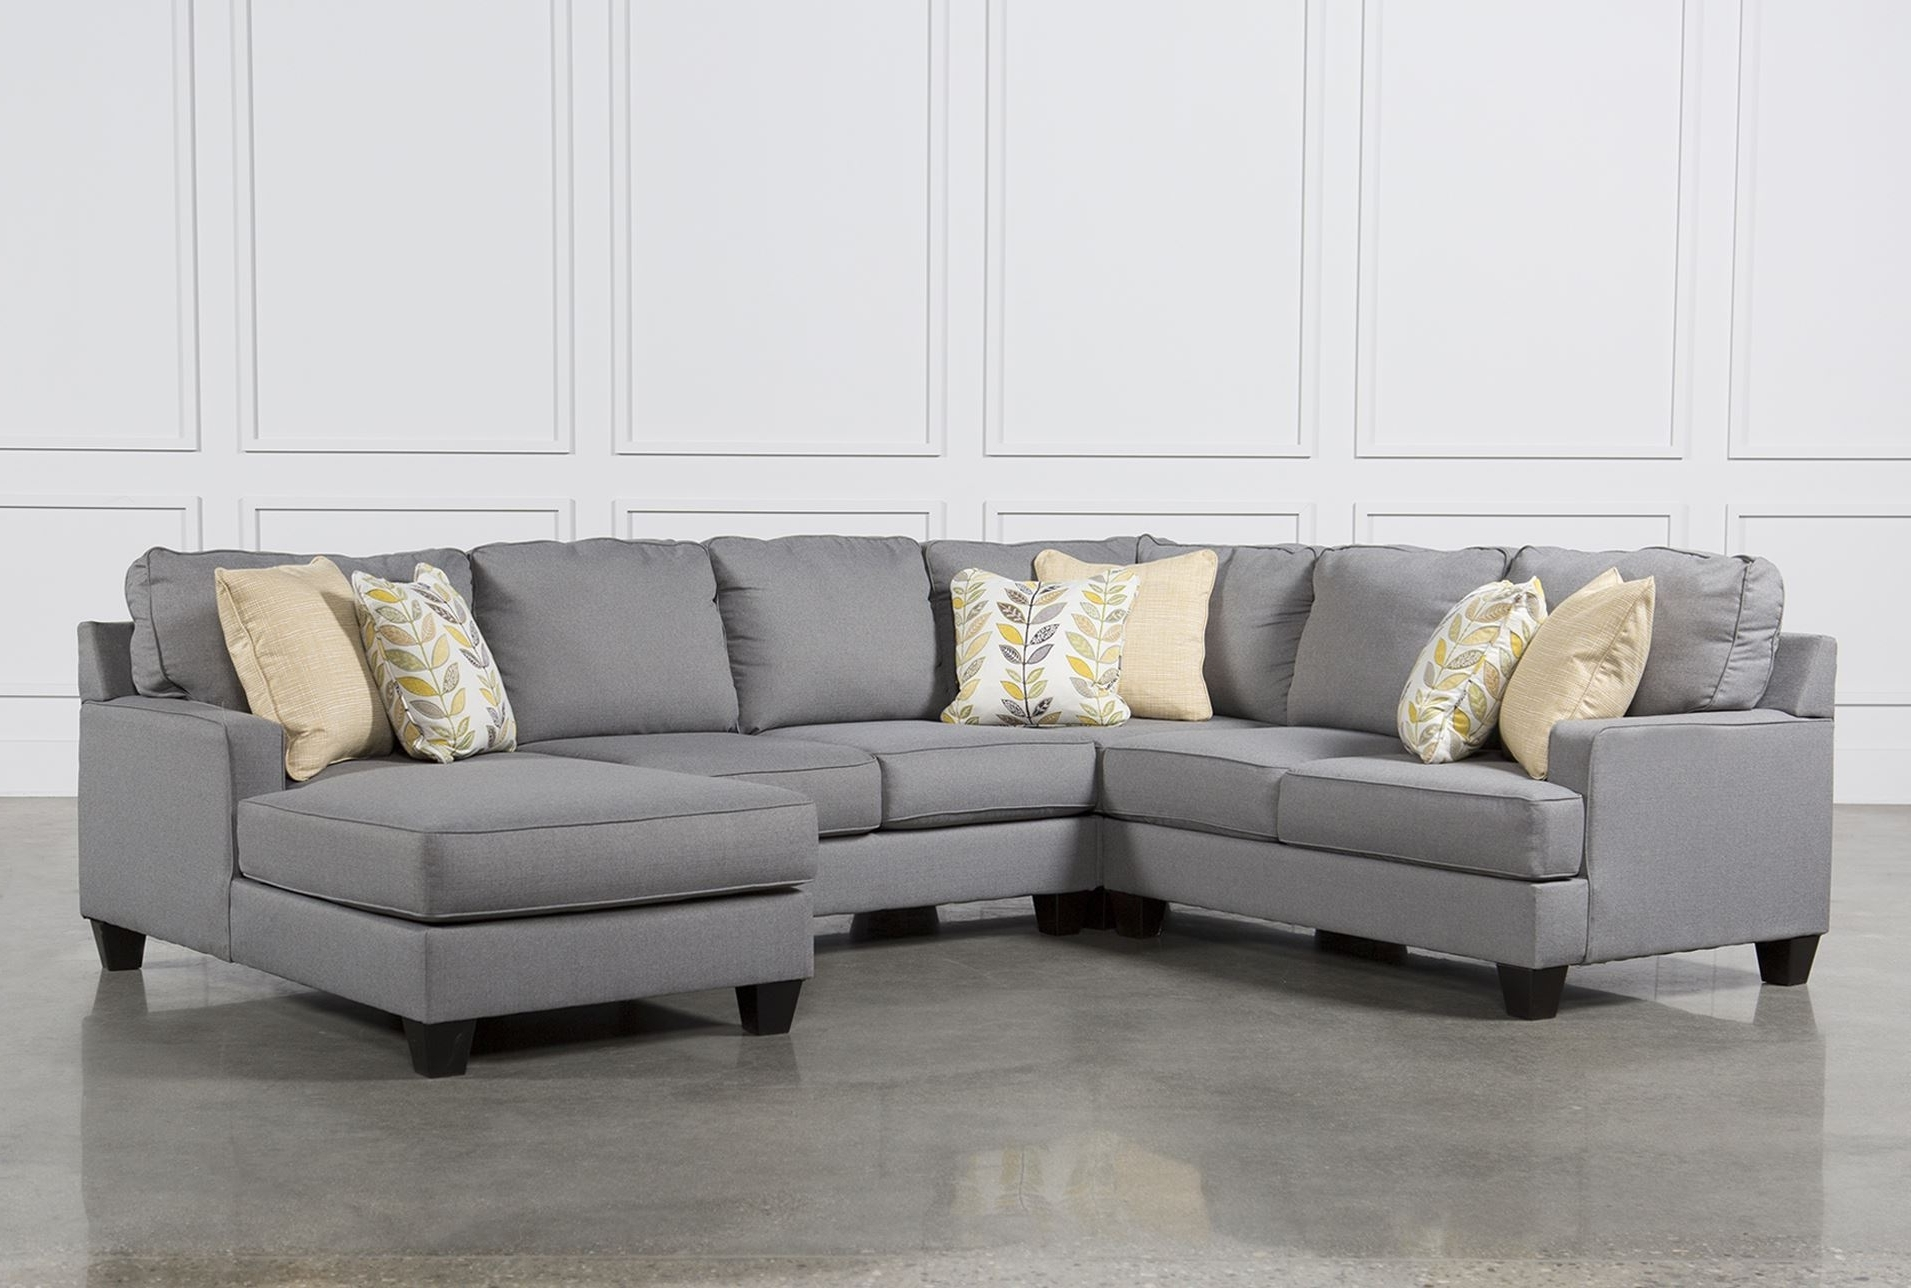 4 Piece Sectional Sofas With Chaise with regard to Most Up-to-Date Luxury 4 Piece Sectional Sofa 74 For Your Office Sofa Ideas With 4